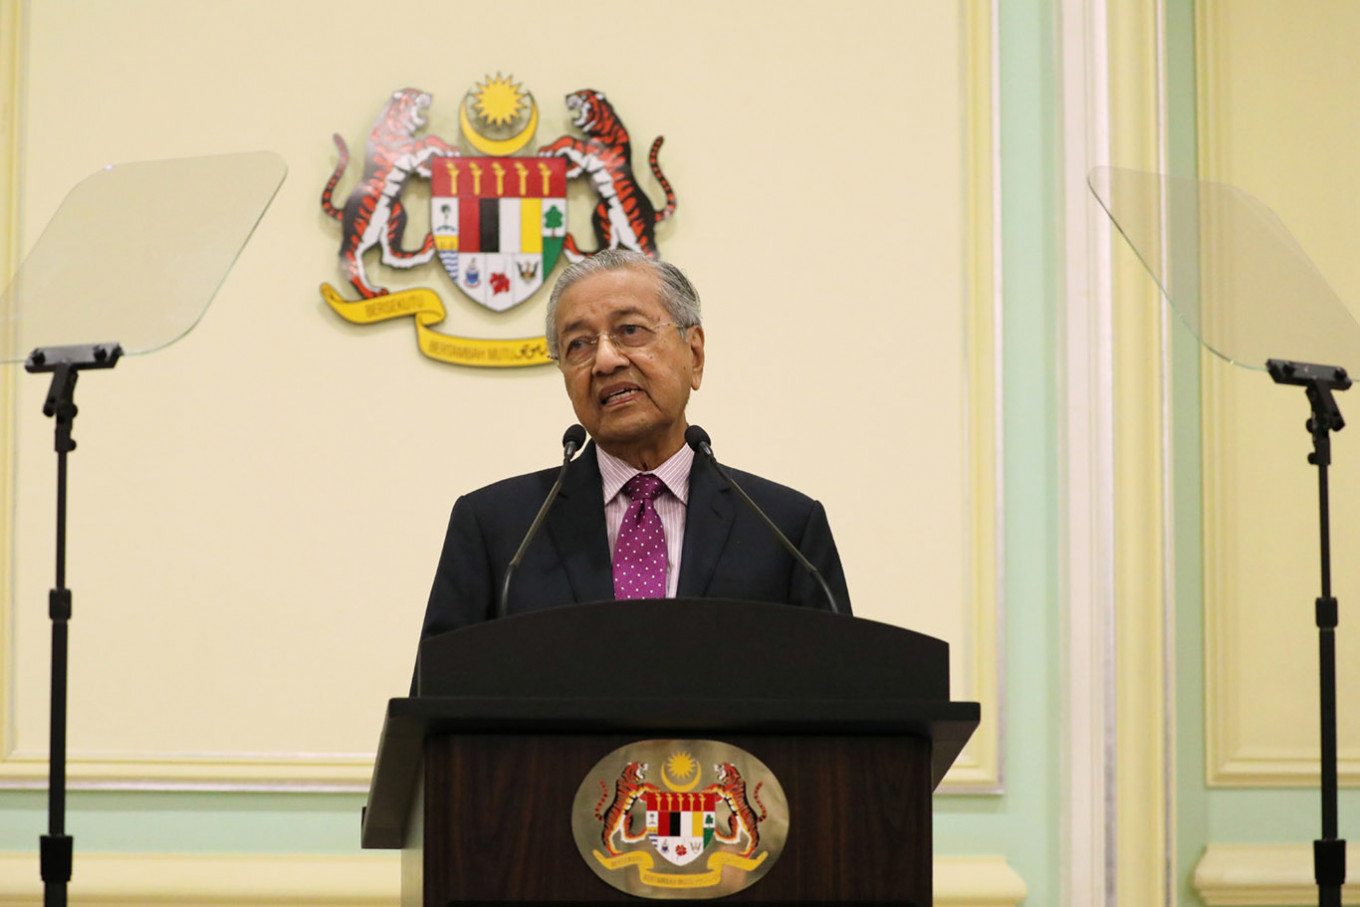 'Malay First', Mahathir's thirst for power behind UMNO's sudden comeback